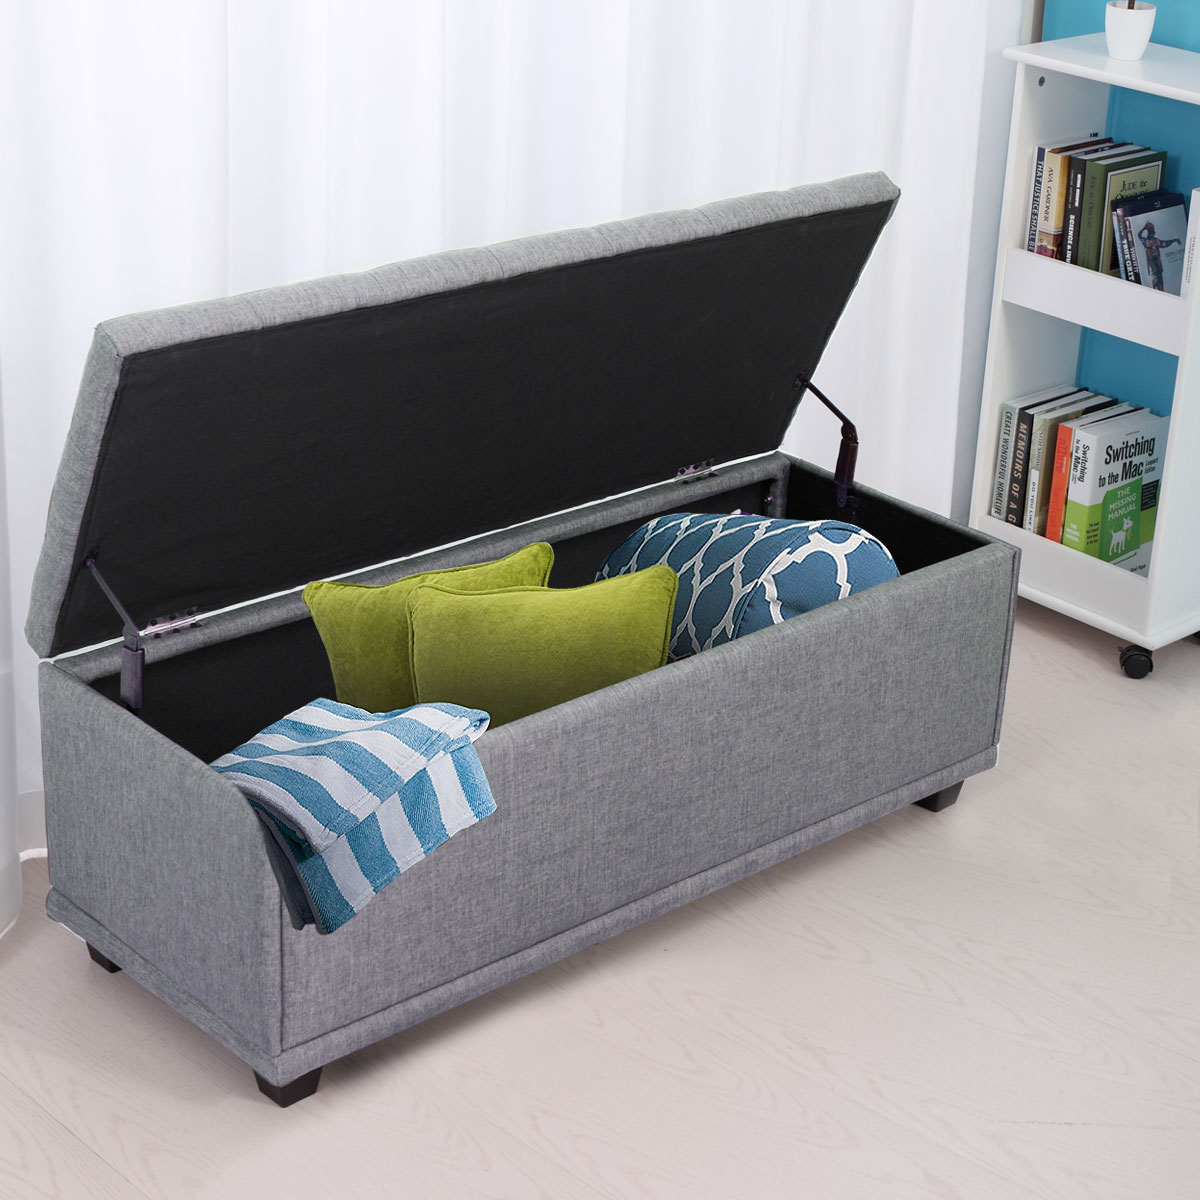 Storage Living Room Furniture: Gray Storage Ottoman Bench Fabric Furniture Foot Stool